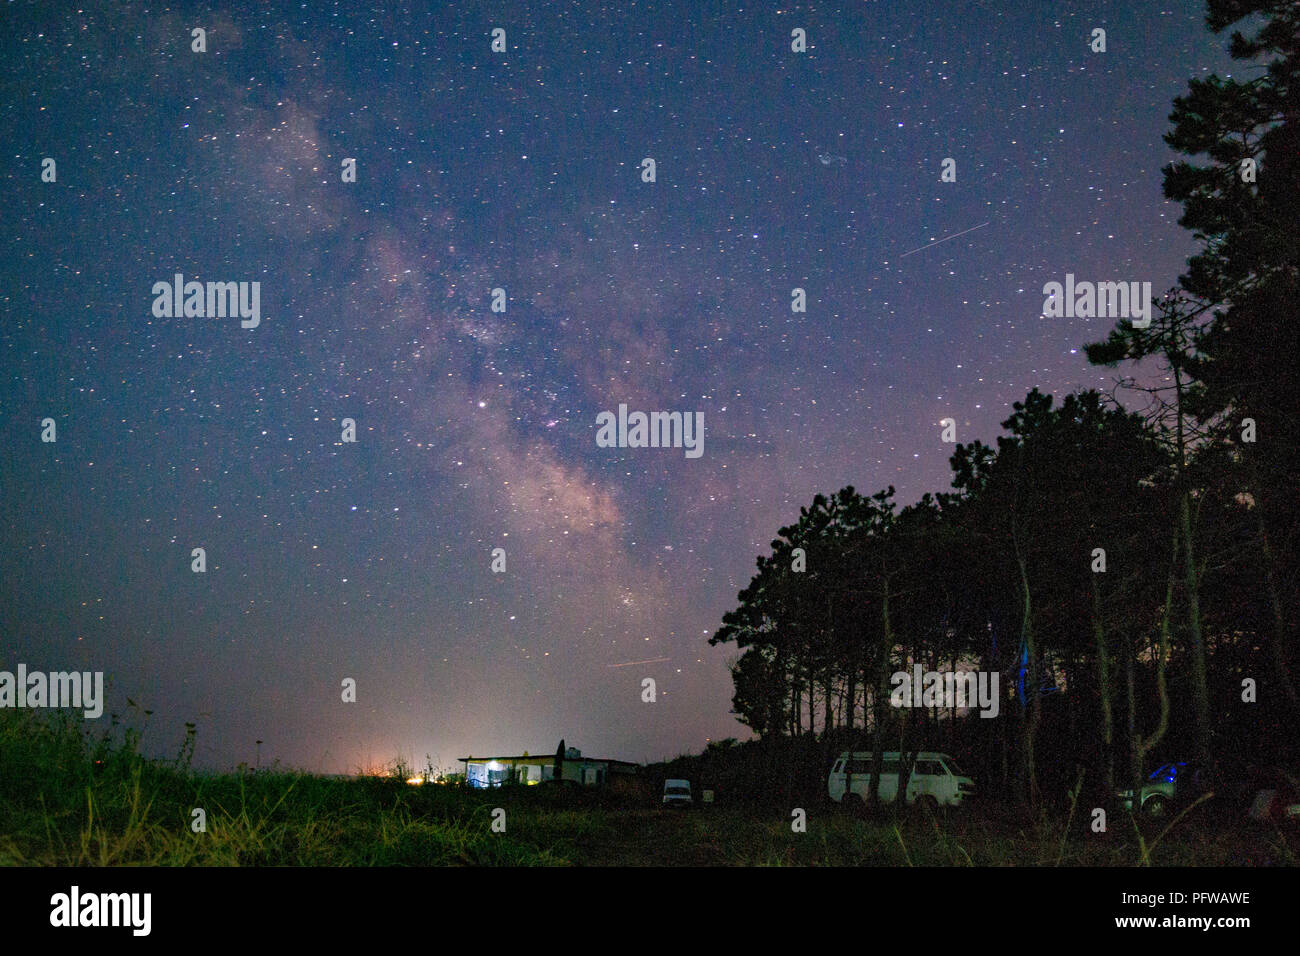 Camp forrest with the Milky Way at night - Stock Image